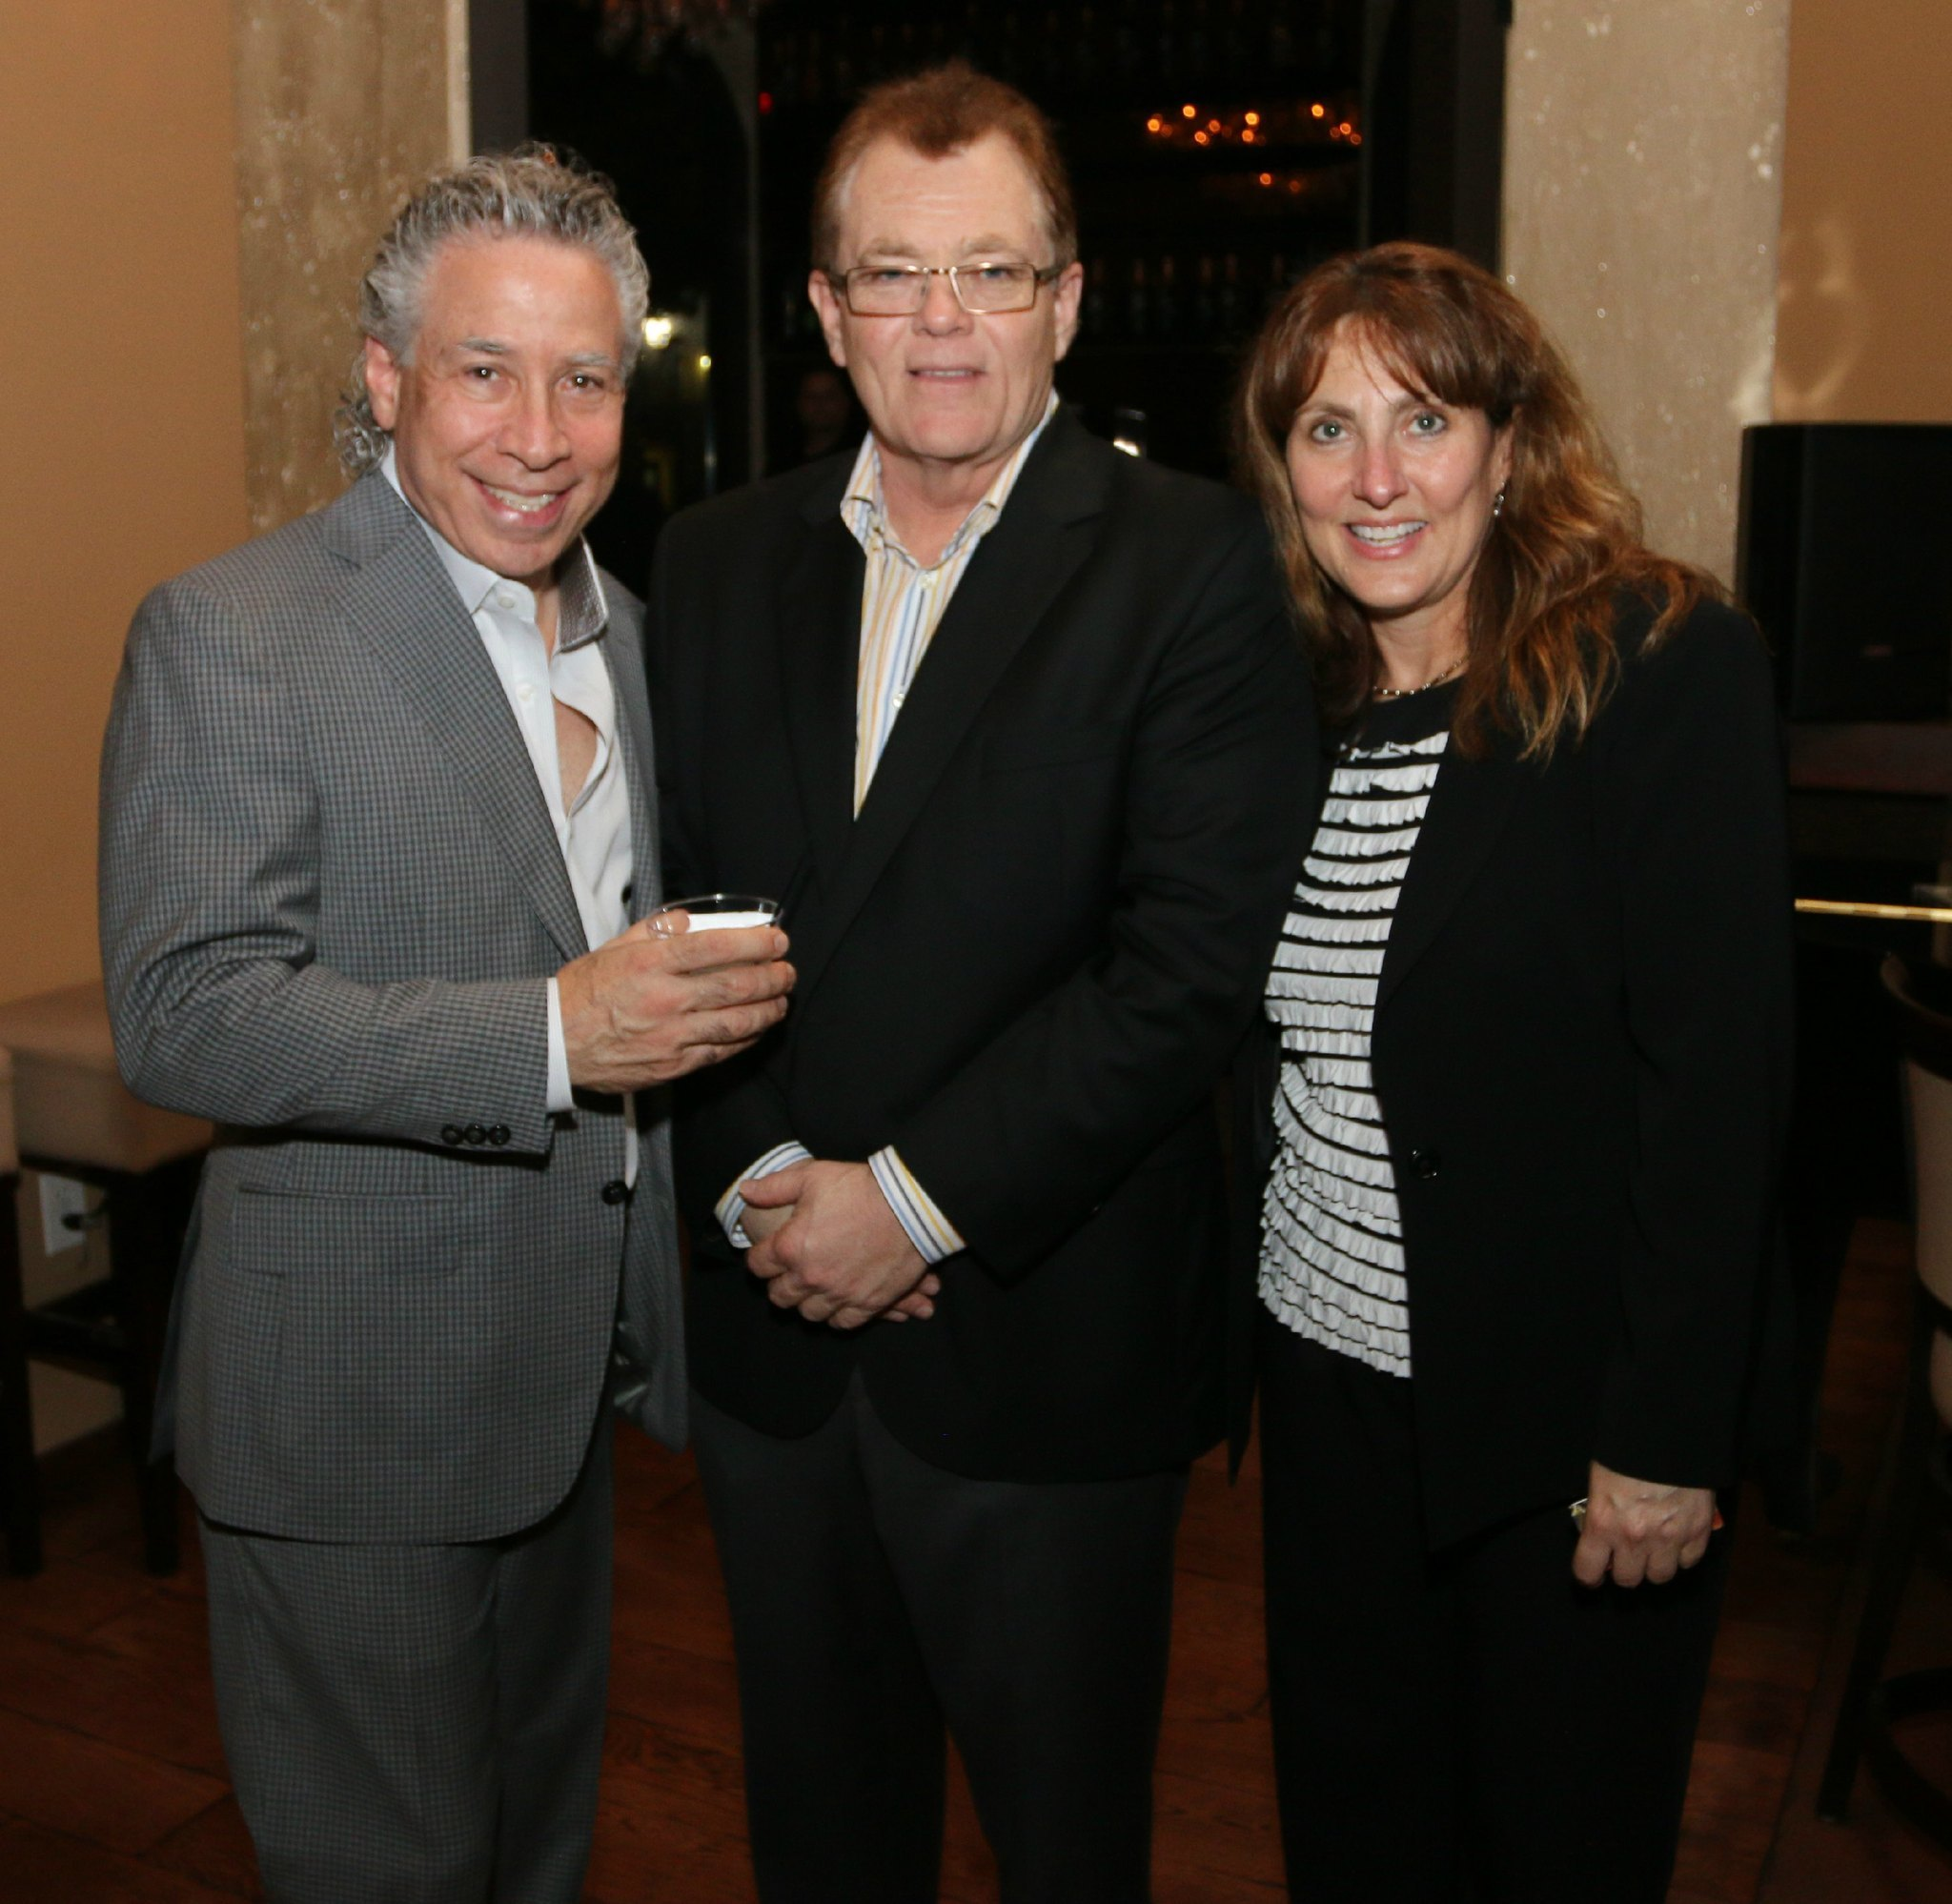 Jazziz Nightlife Grand Opening Party - Steven Fagien, Mike Bilton and Karen Meyers